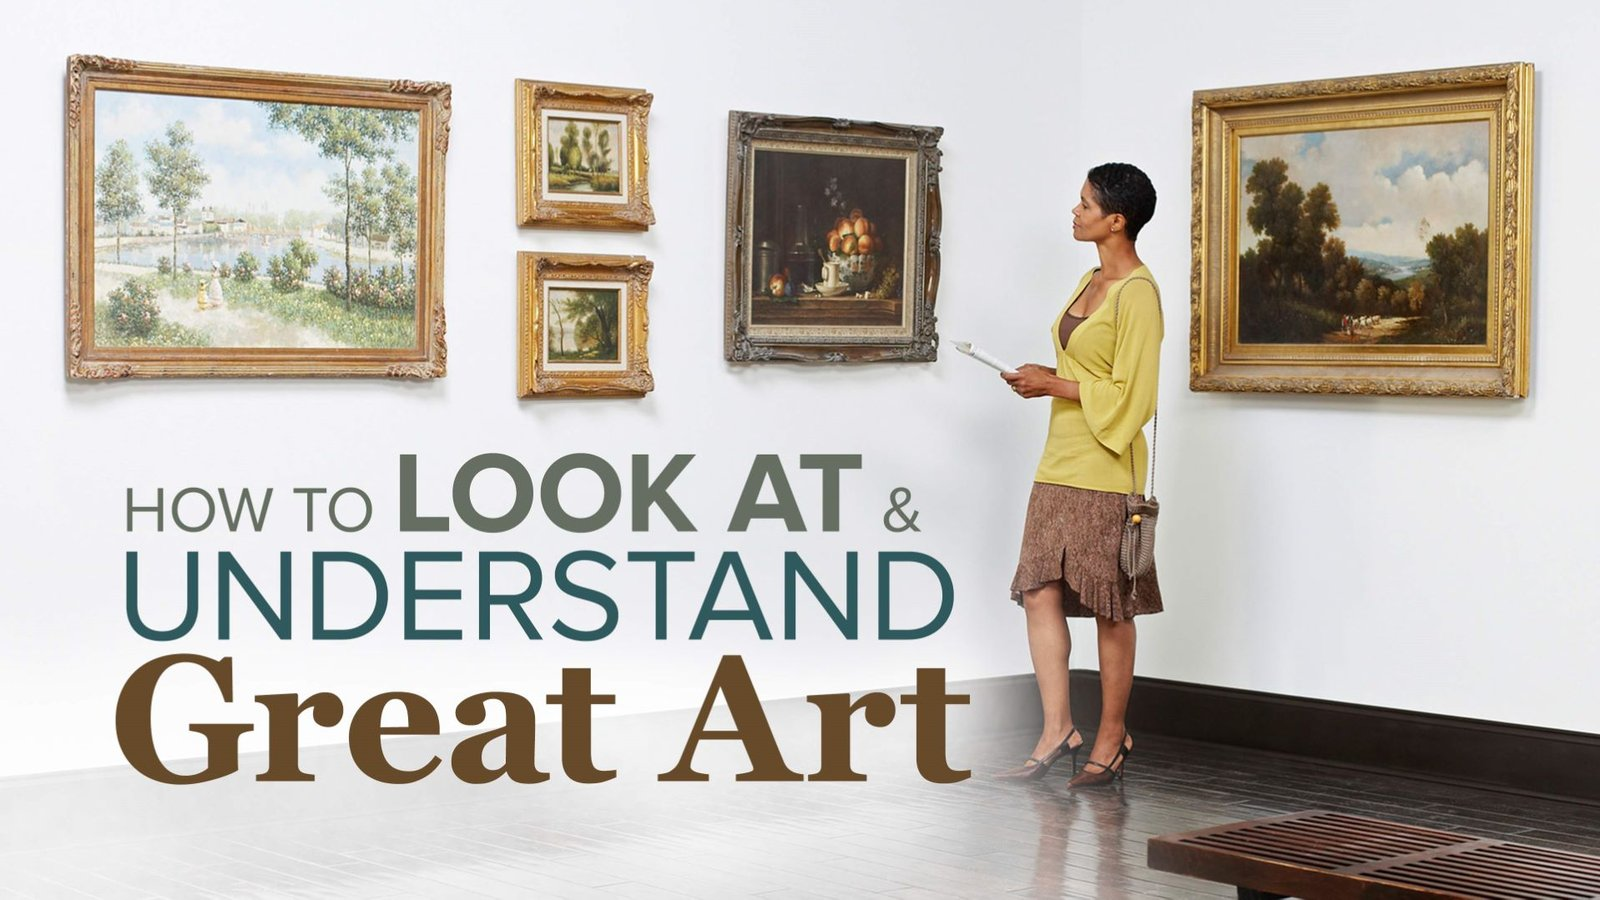 How to Look at and Understand Great Art